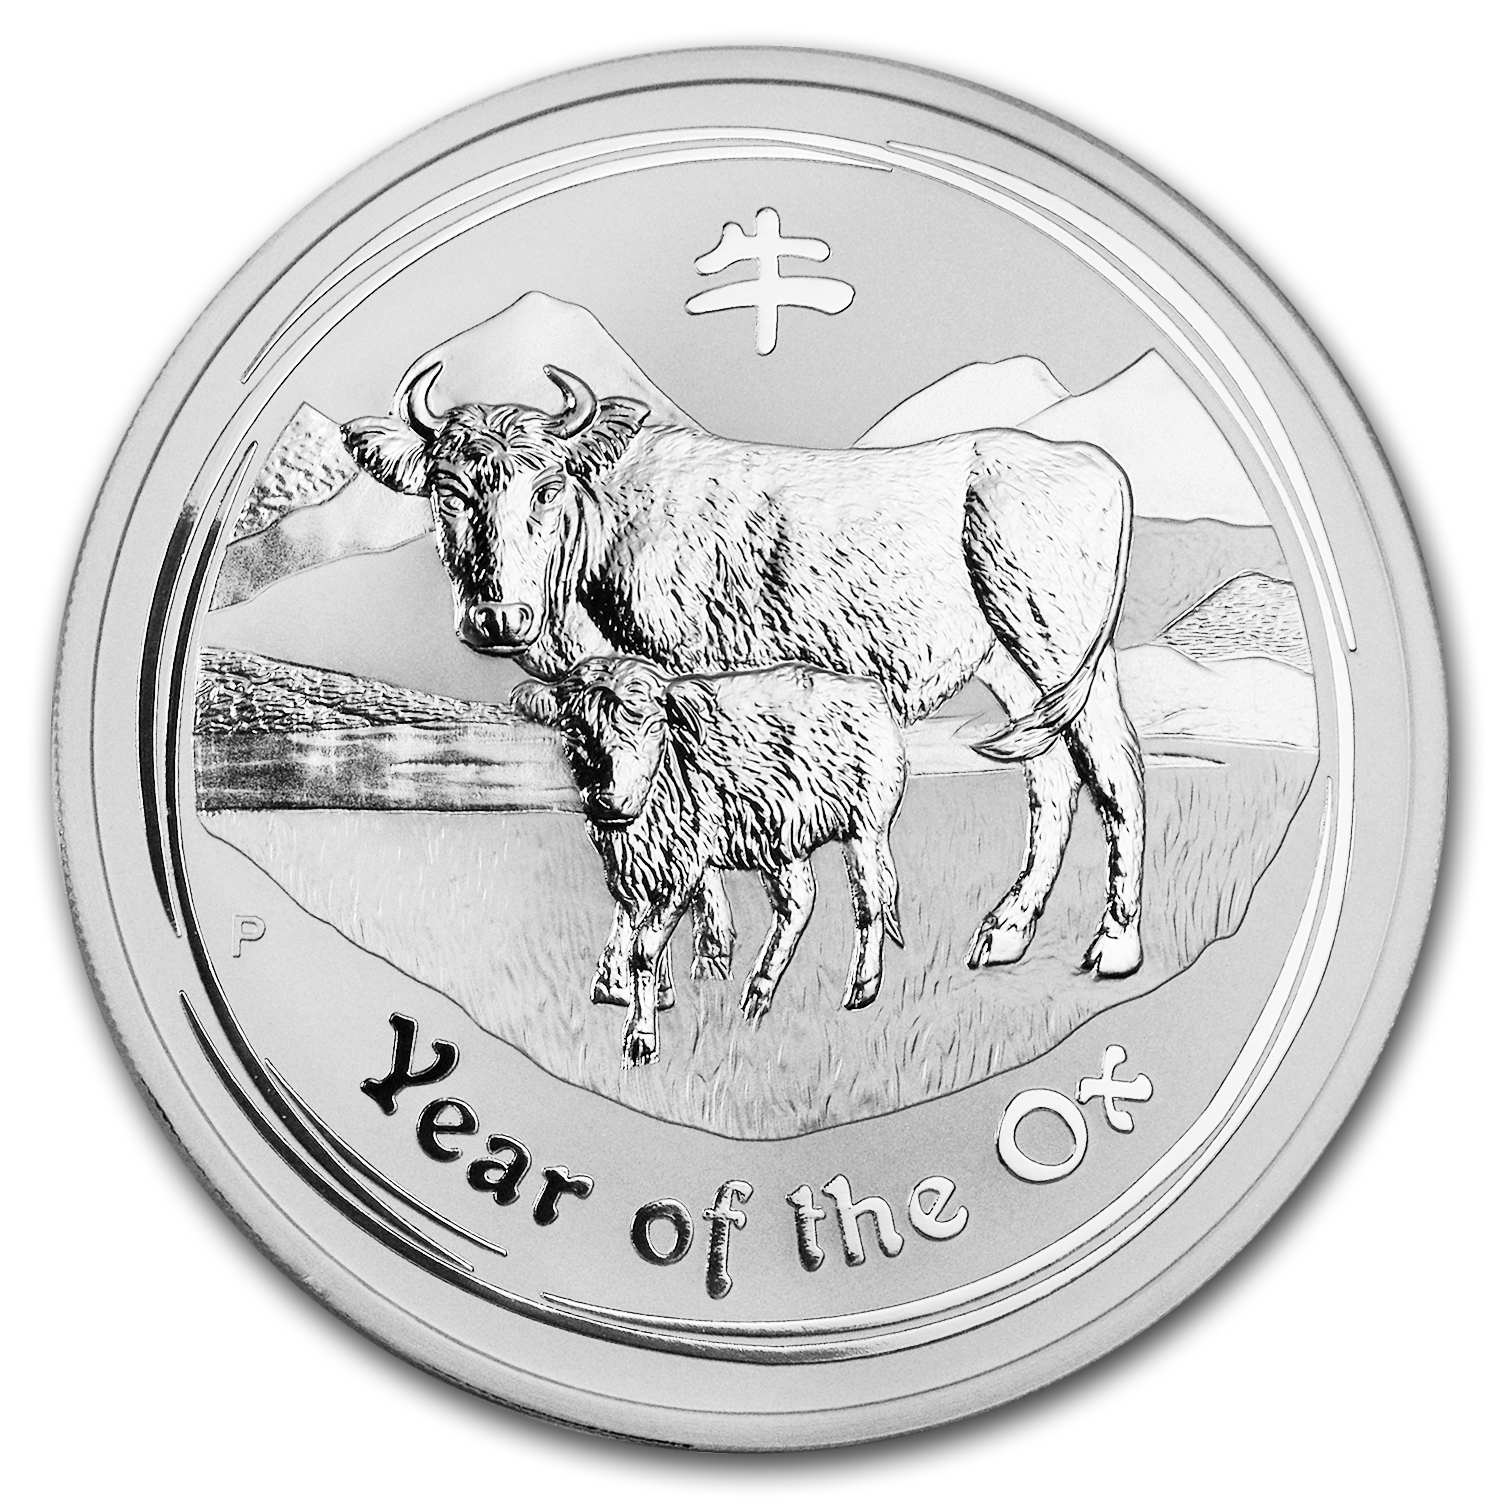 2009 5 oz Silver Australian Year of the Ox BU (Series II)